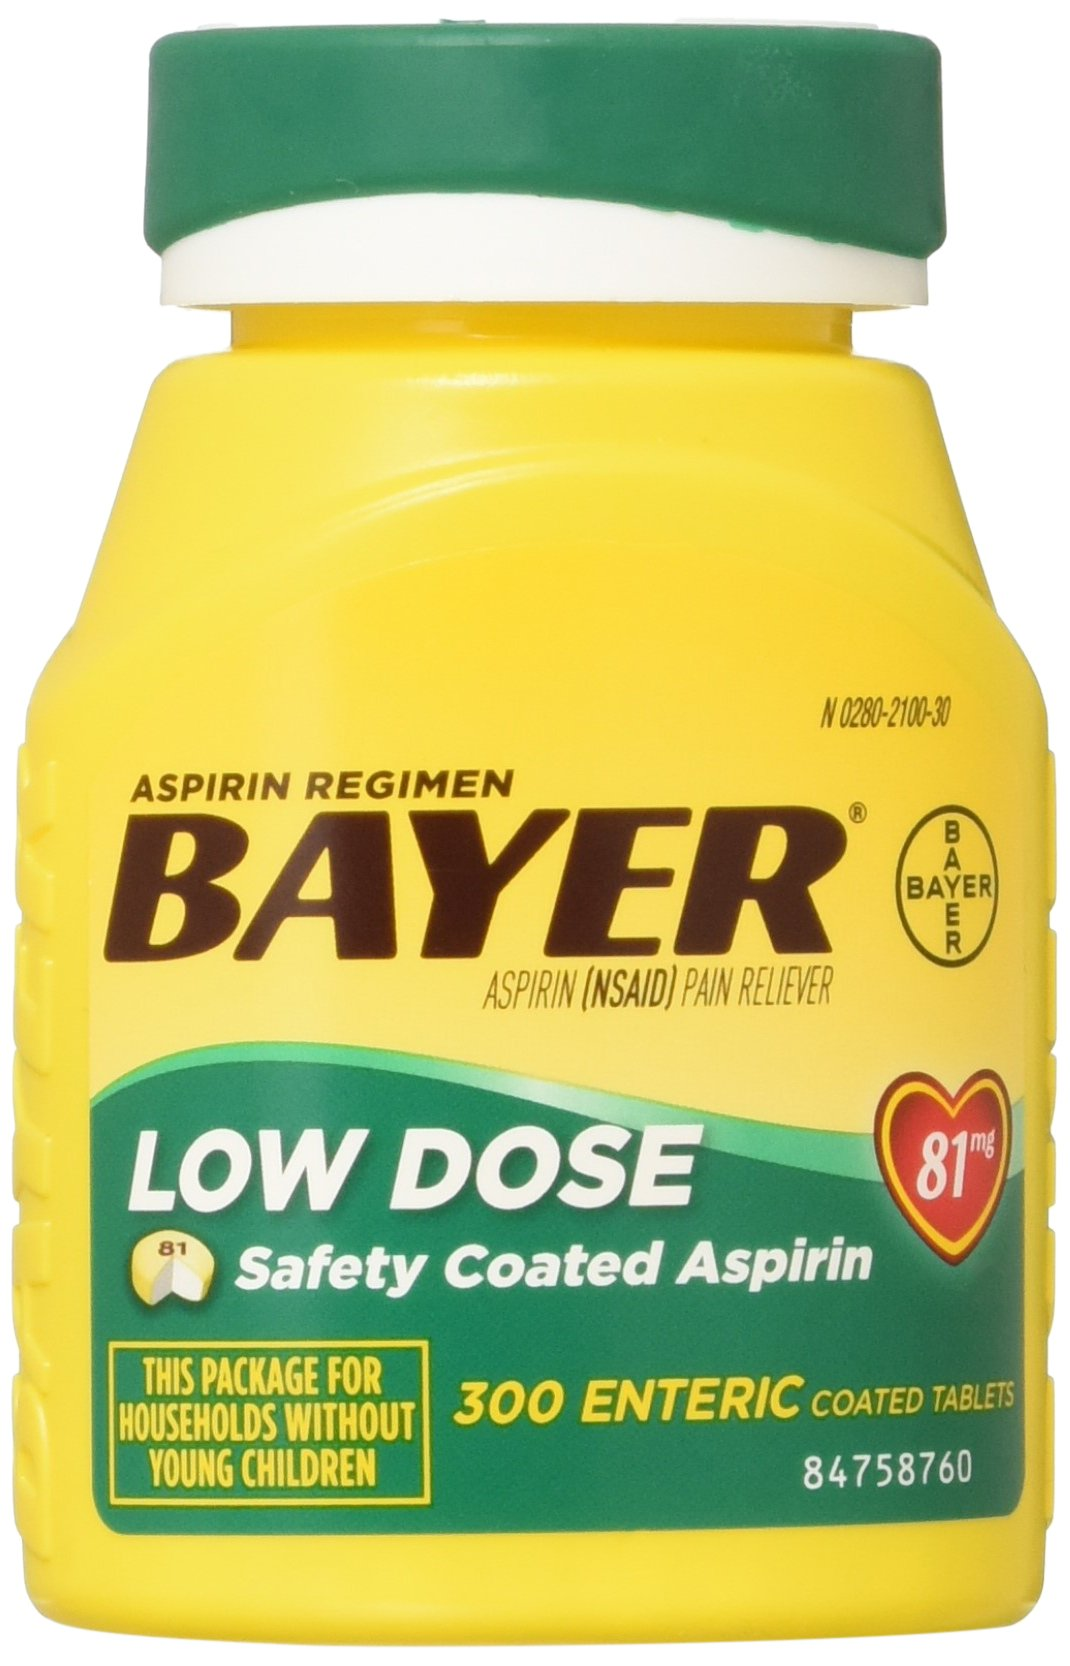 Bayer Low Dose 81mg Tab B Size 300ct Bayer Low Dose 81mg Tab Bttl 300ct by Bayer